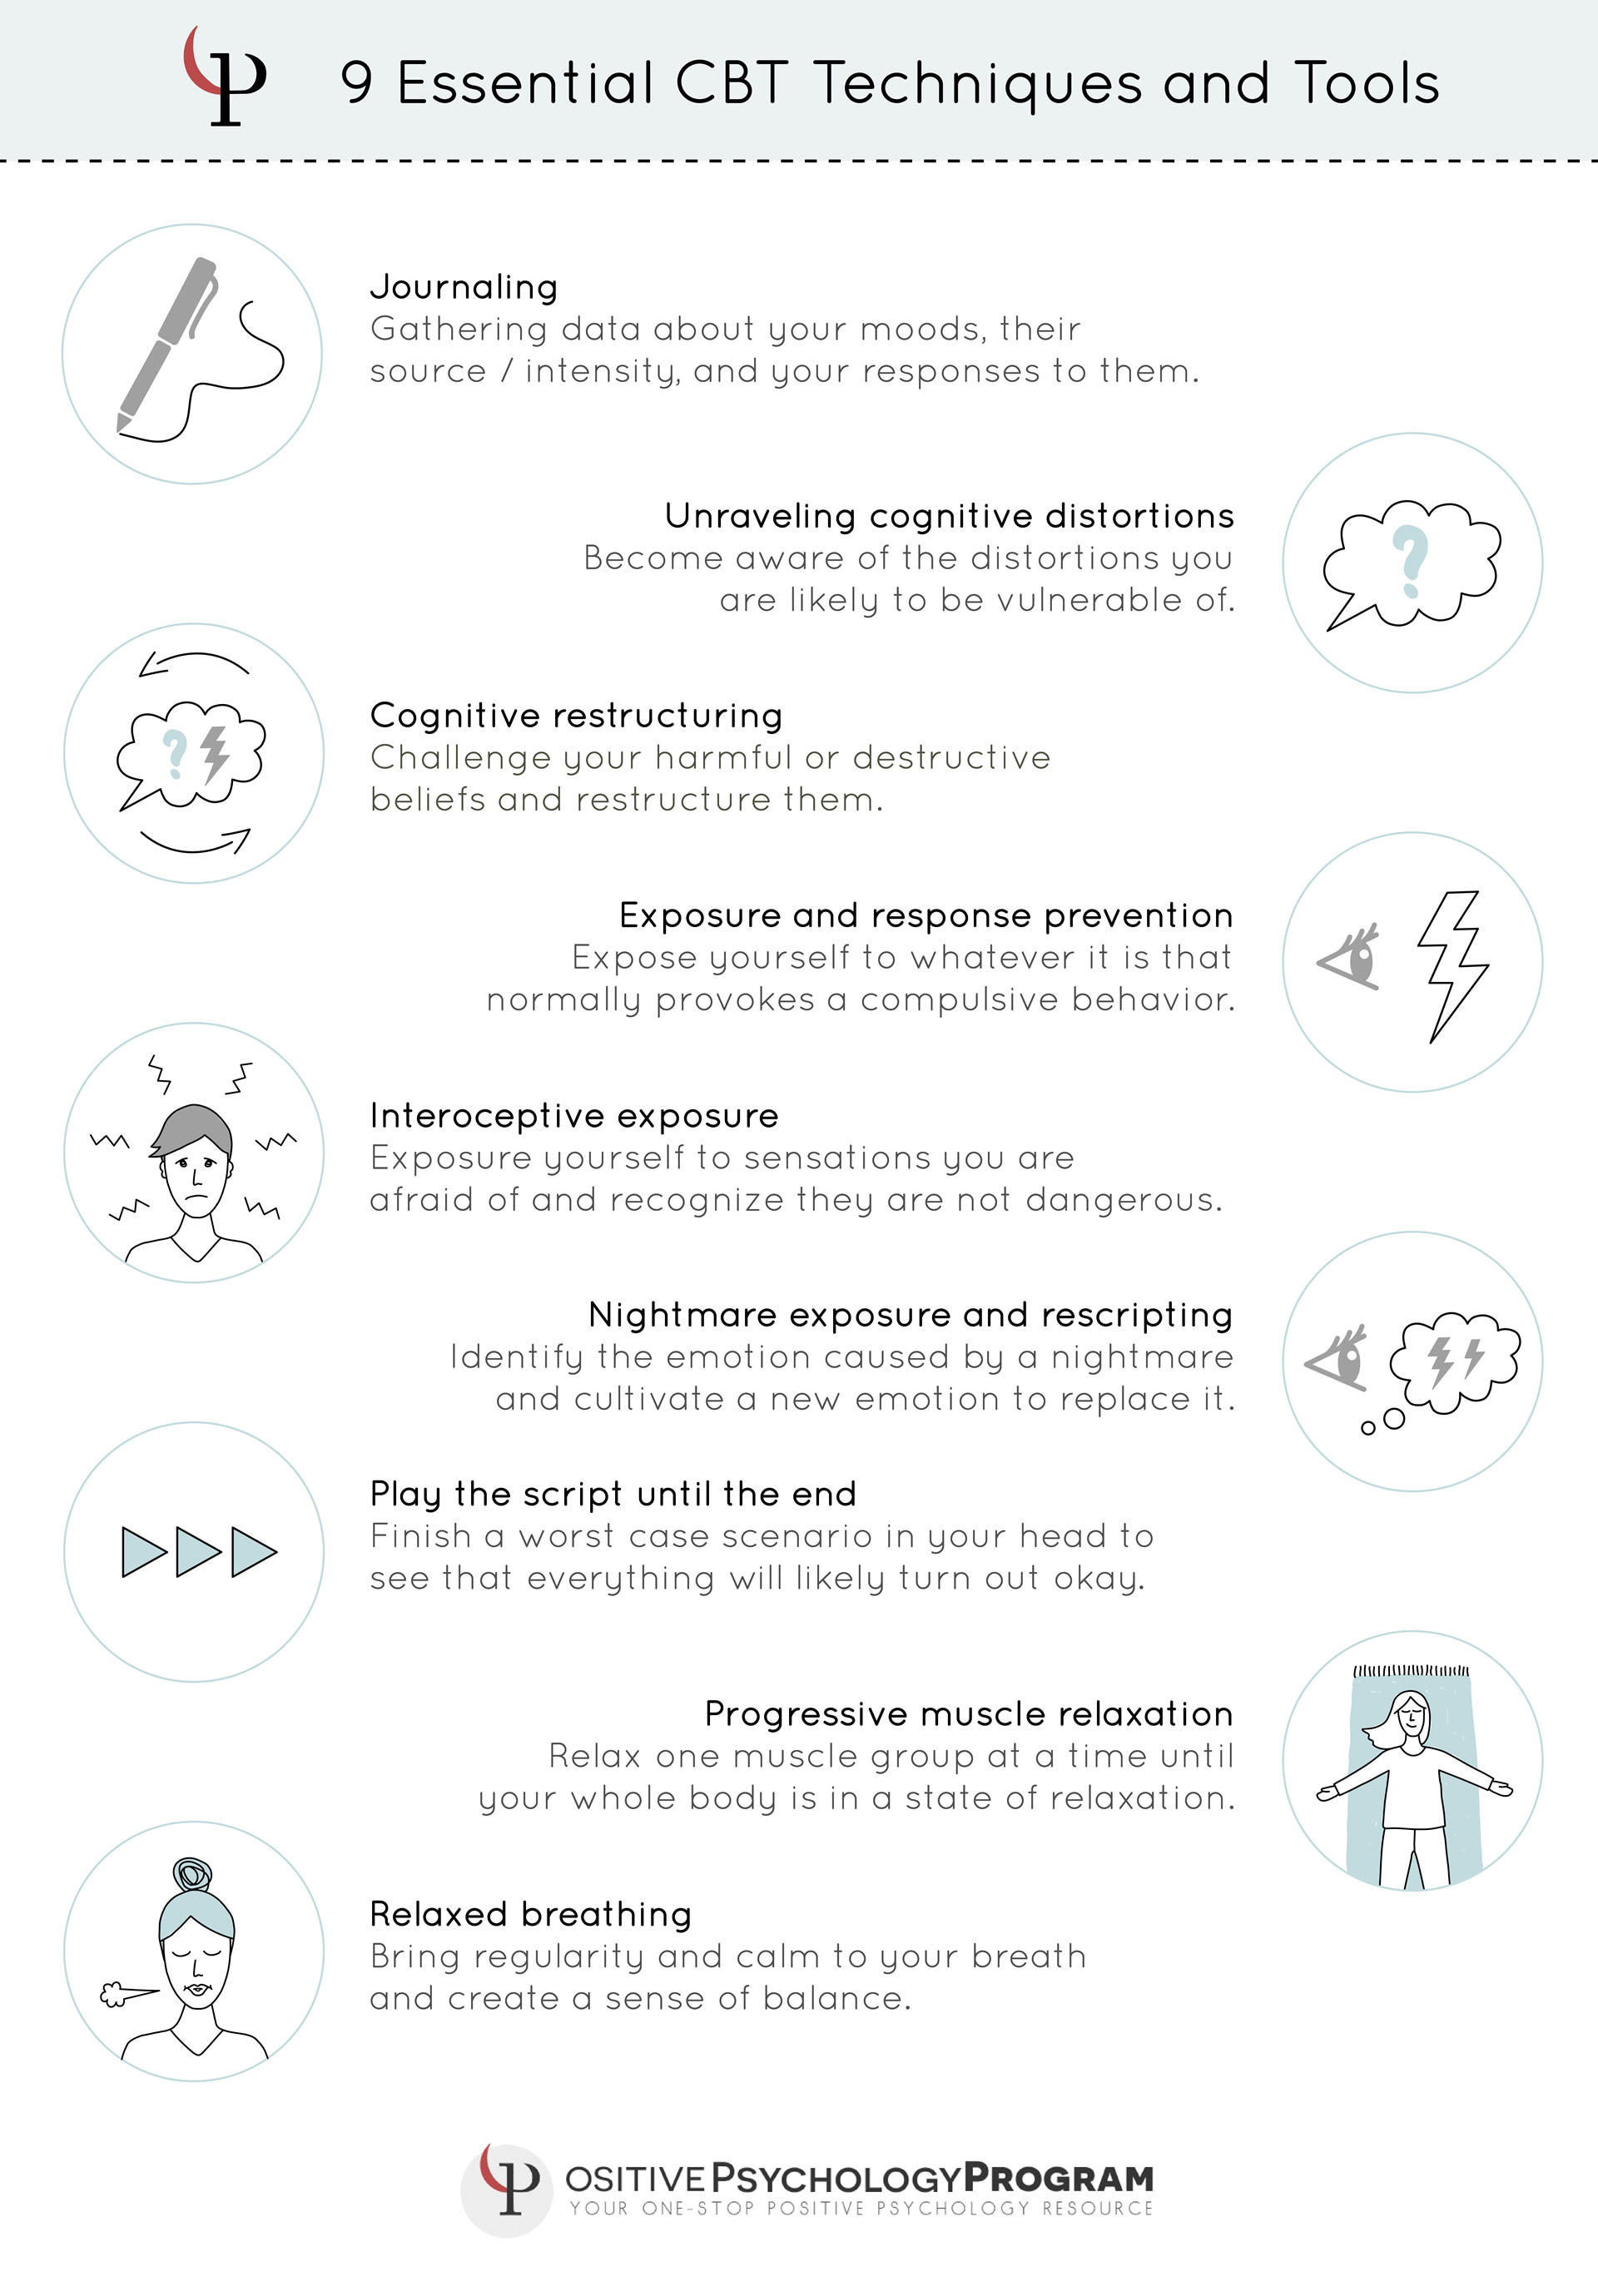 9 Essential CBT Techniques and Tools infographic